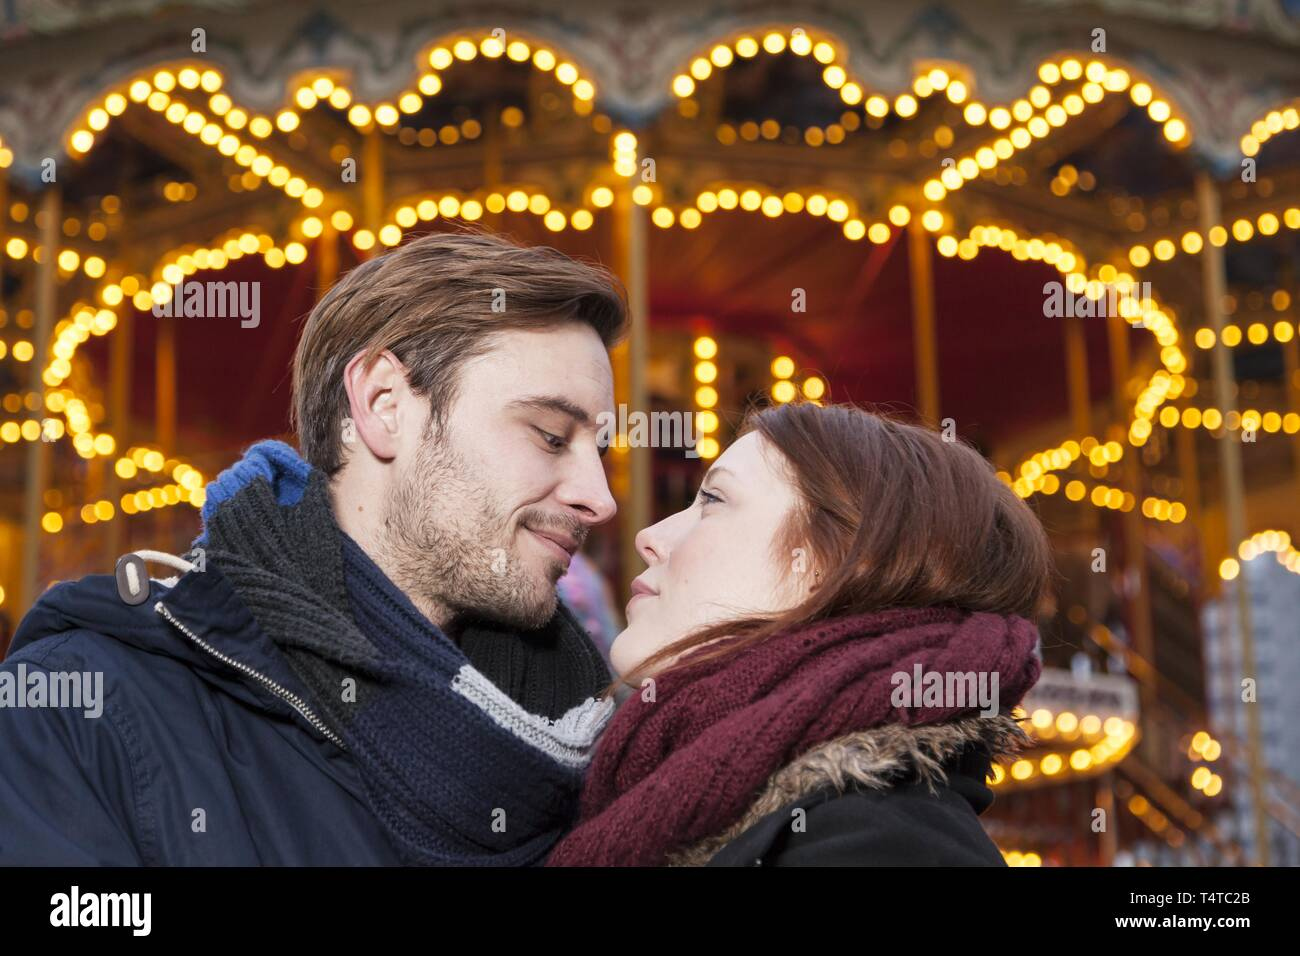 A couple looking into each others eyes, Christmas Market, Germany, Europe - Stock Image